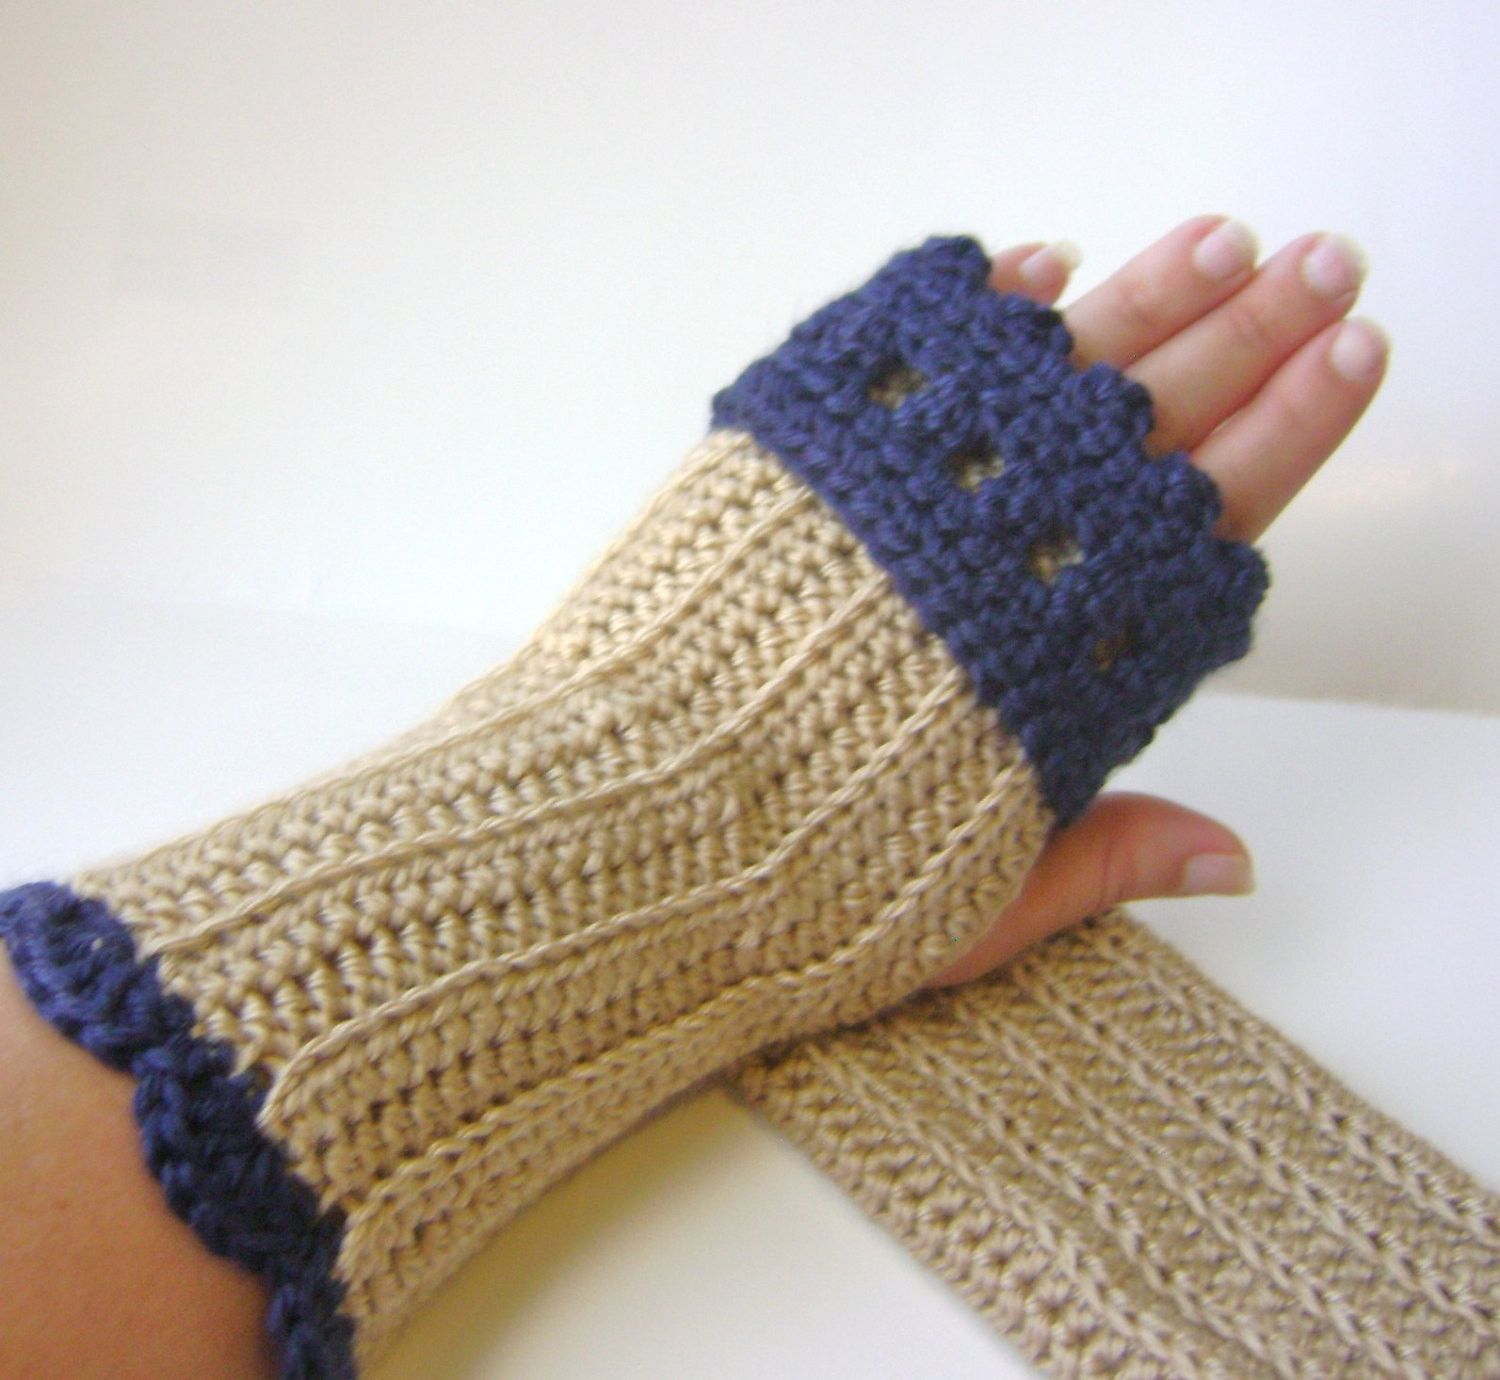 Crochet Gloves Beautiful Pdf Crochet Pattern Fingerless Gloves with Cuff Easy Crochet Of Amazing 45 Ideas Crochet Gloves